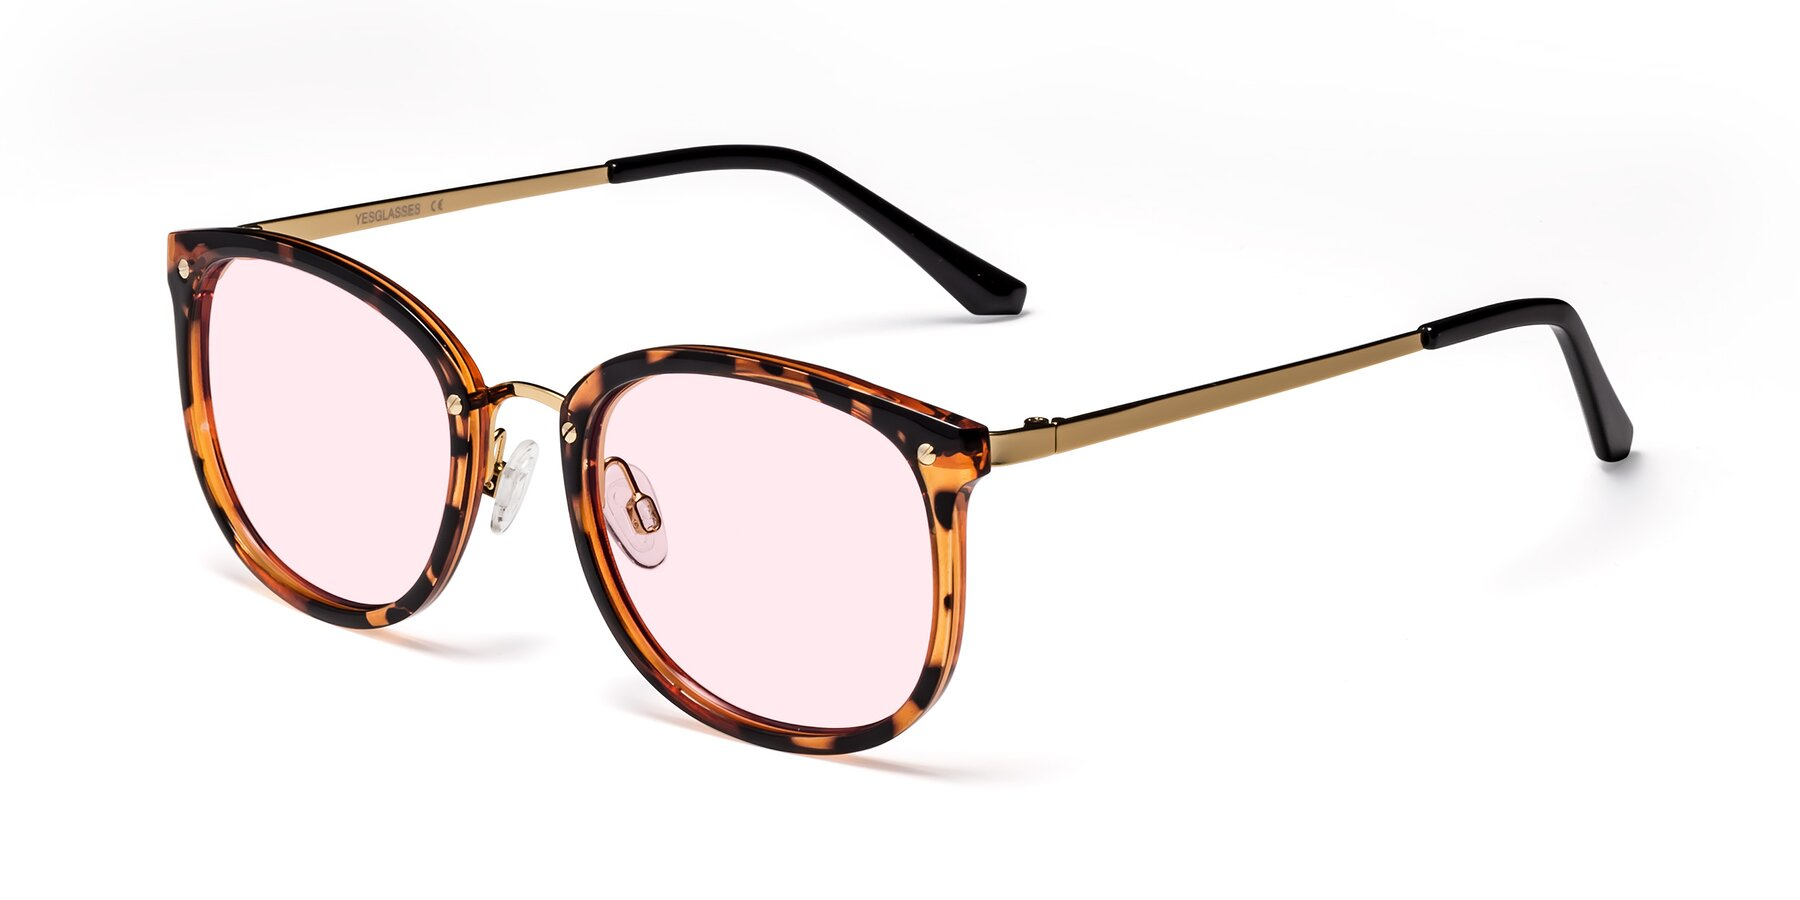 Angle of Timeless in Tortoise-Golden with Light Pink Tinted Lenses